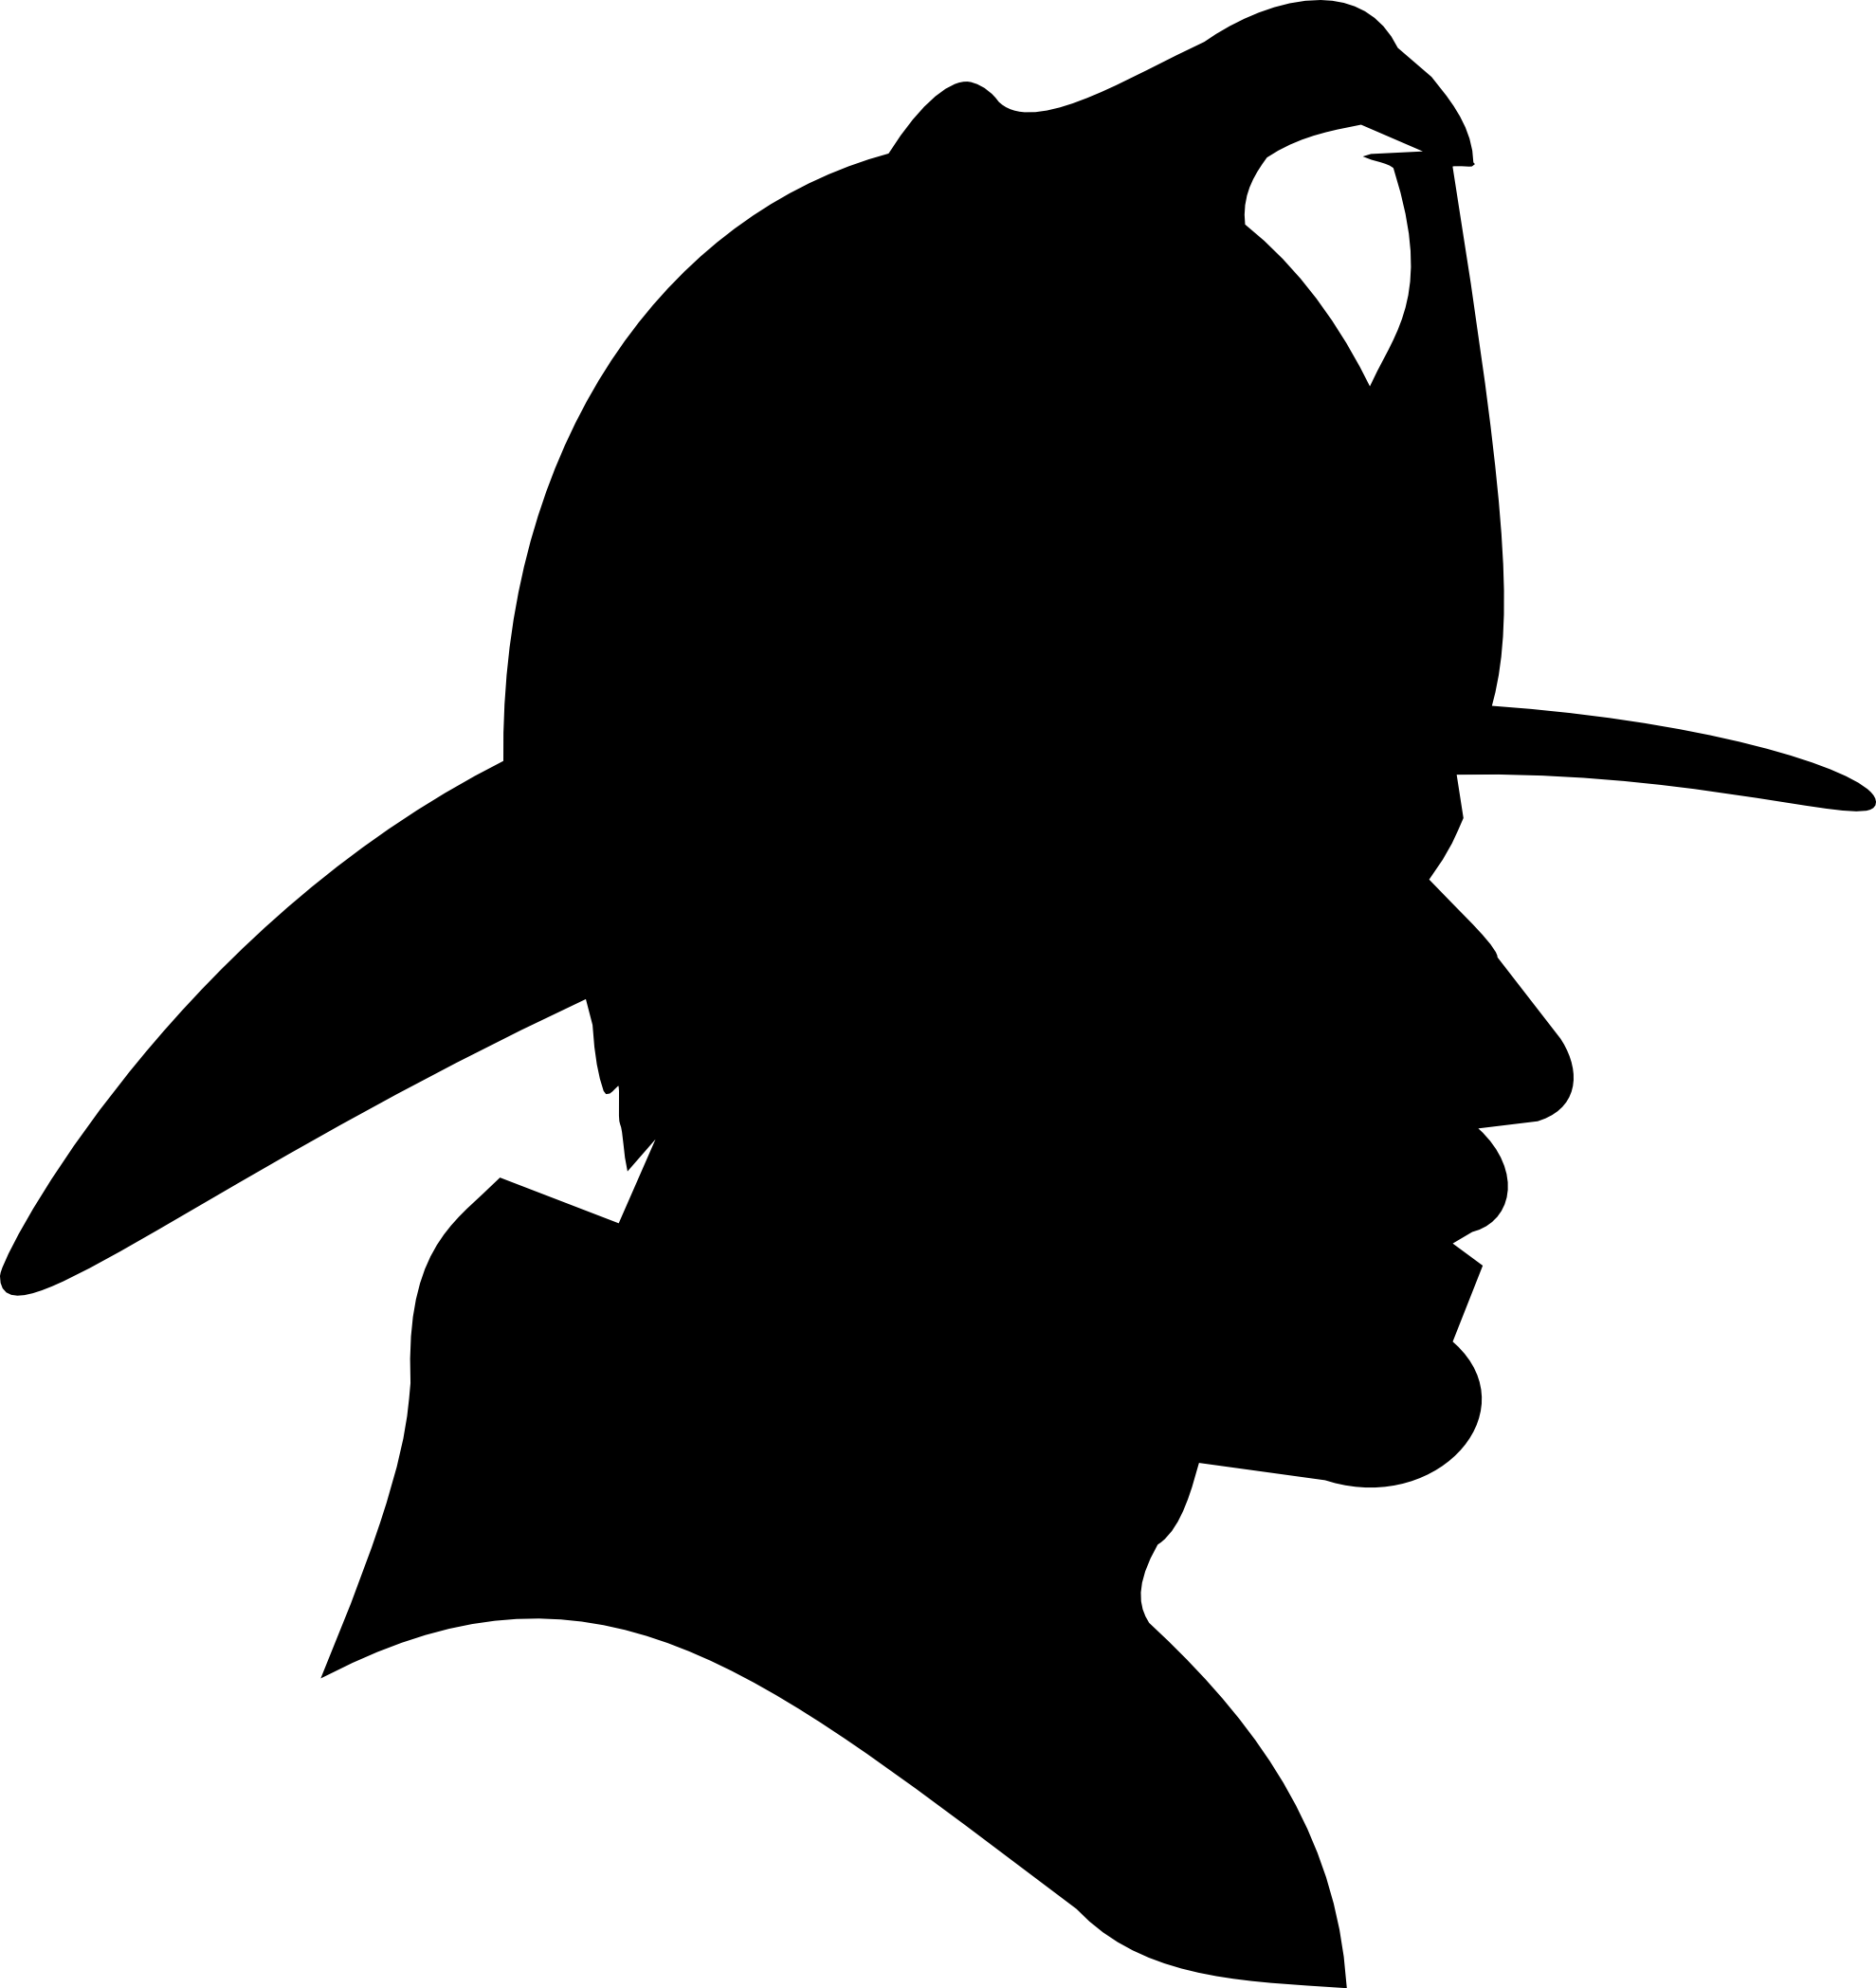 Fireman cross clipart image black and white stock Saturday Clip Art | clipartist.info Firefighter Profile Silhouette ... image black and white stock